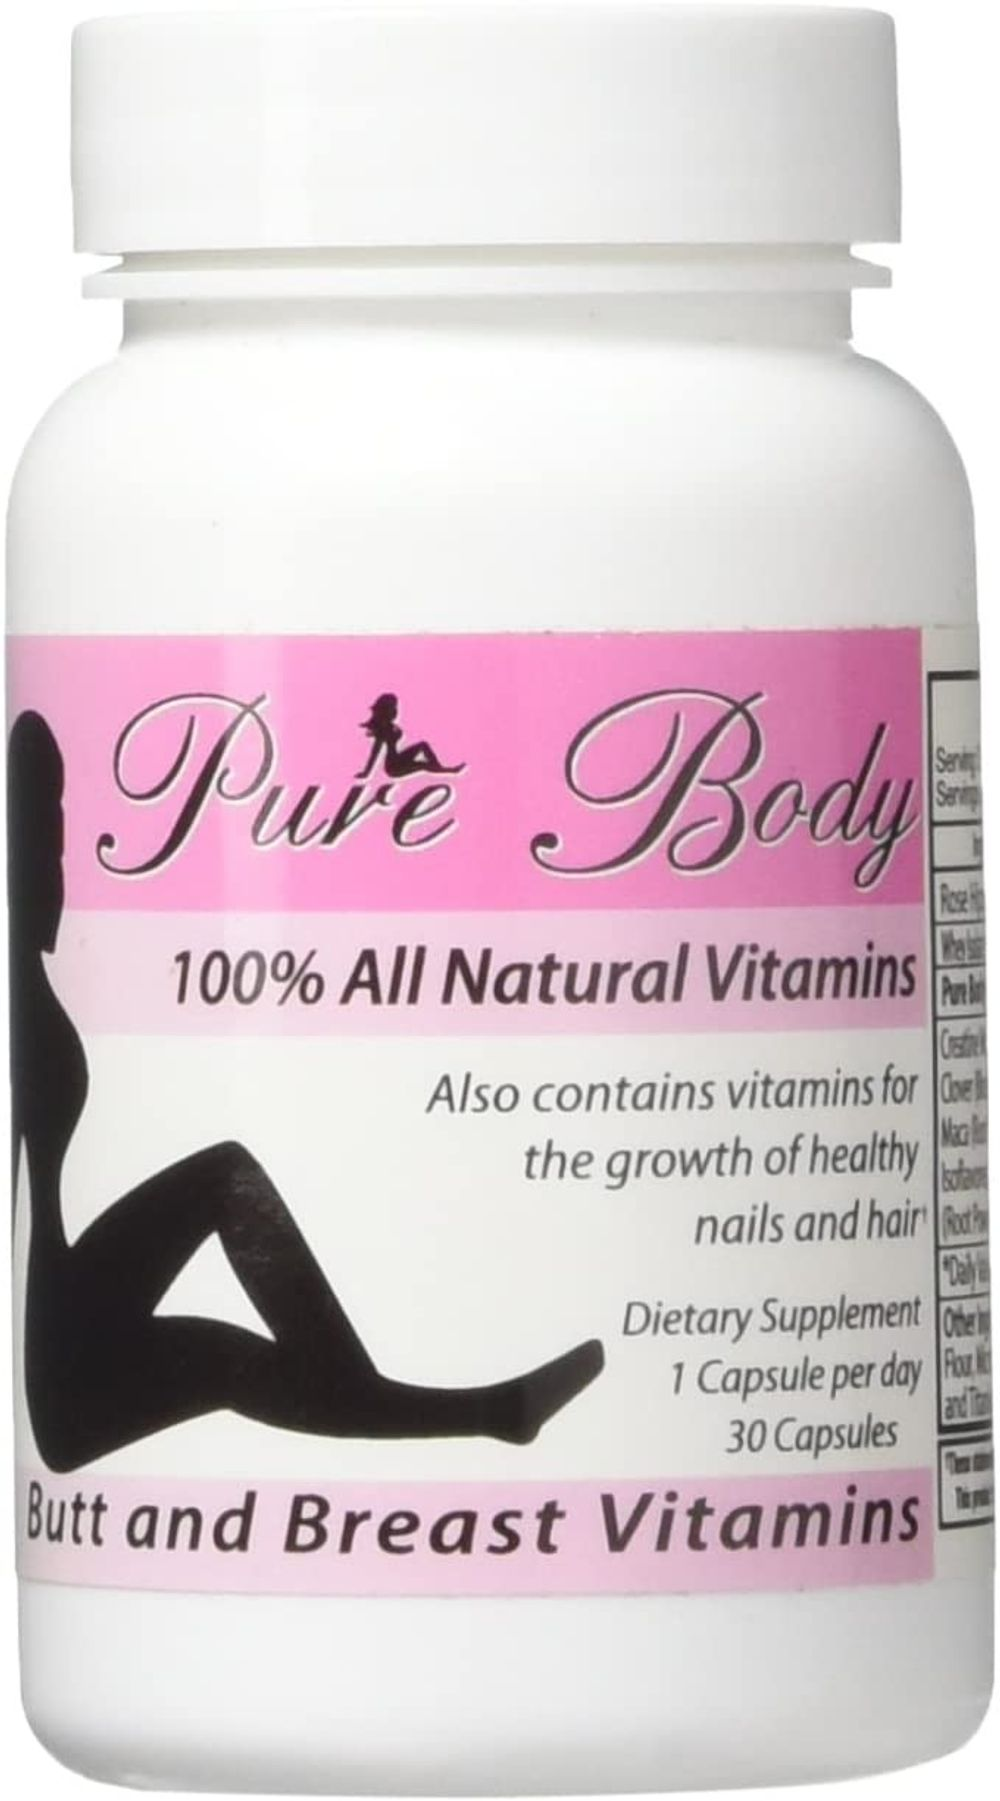 PureBody Vitamins - The #1 Butt and Breast Enhancement Supplement - All-in-One Formula - 30 Capsules